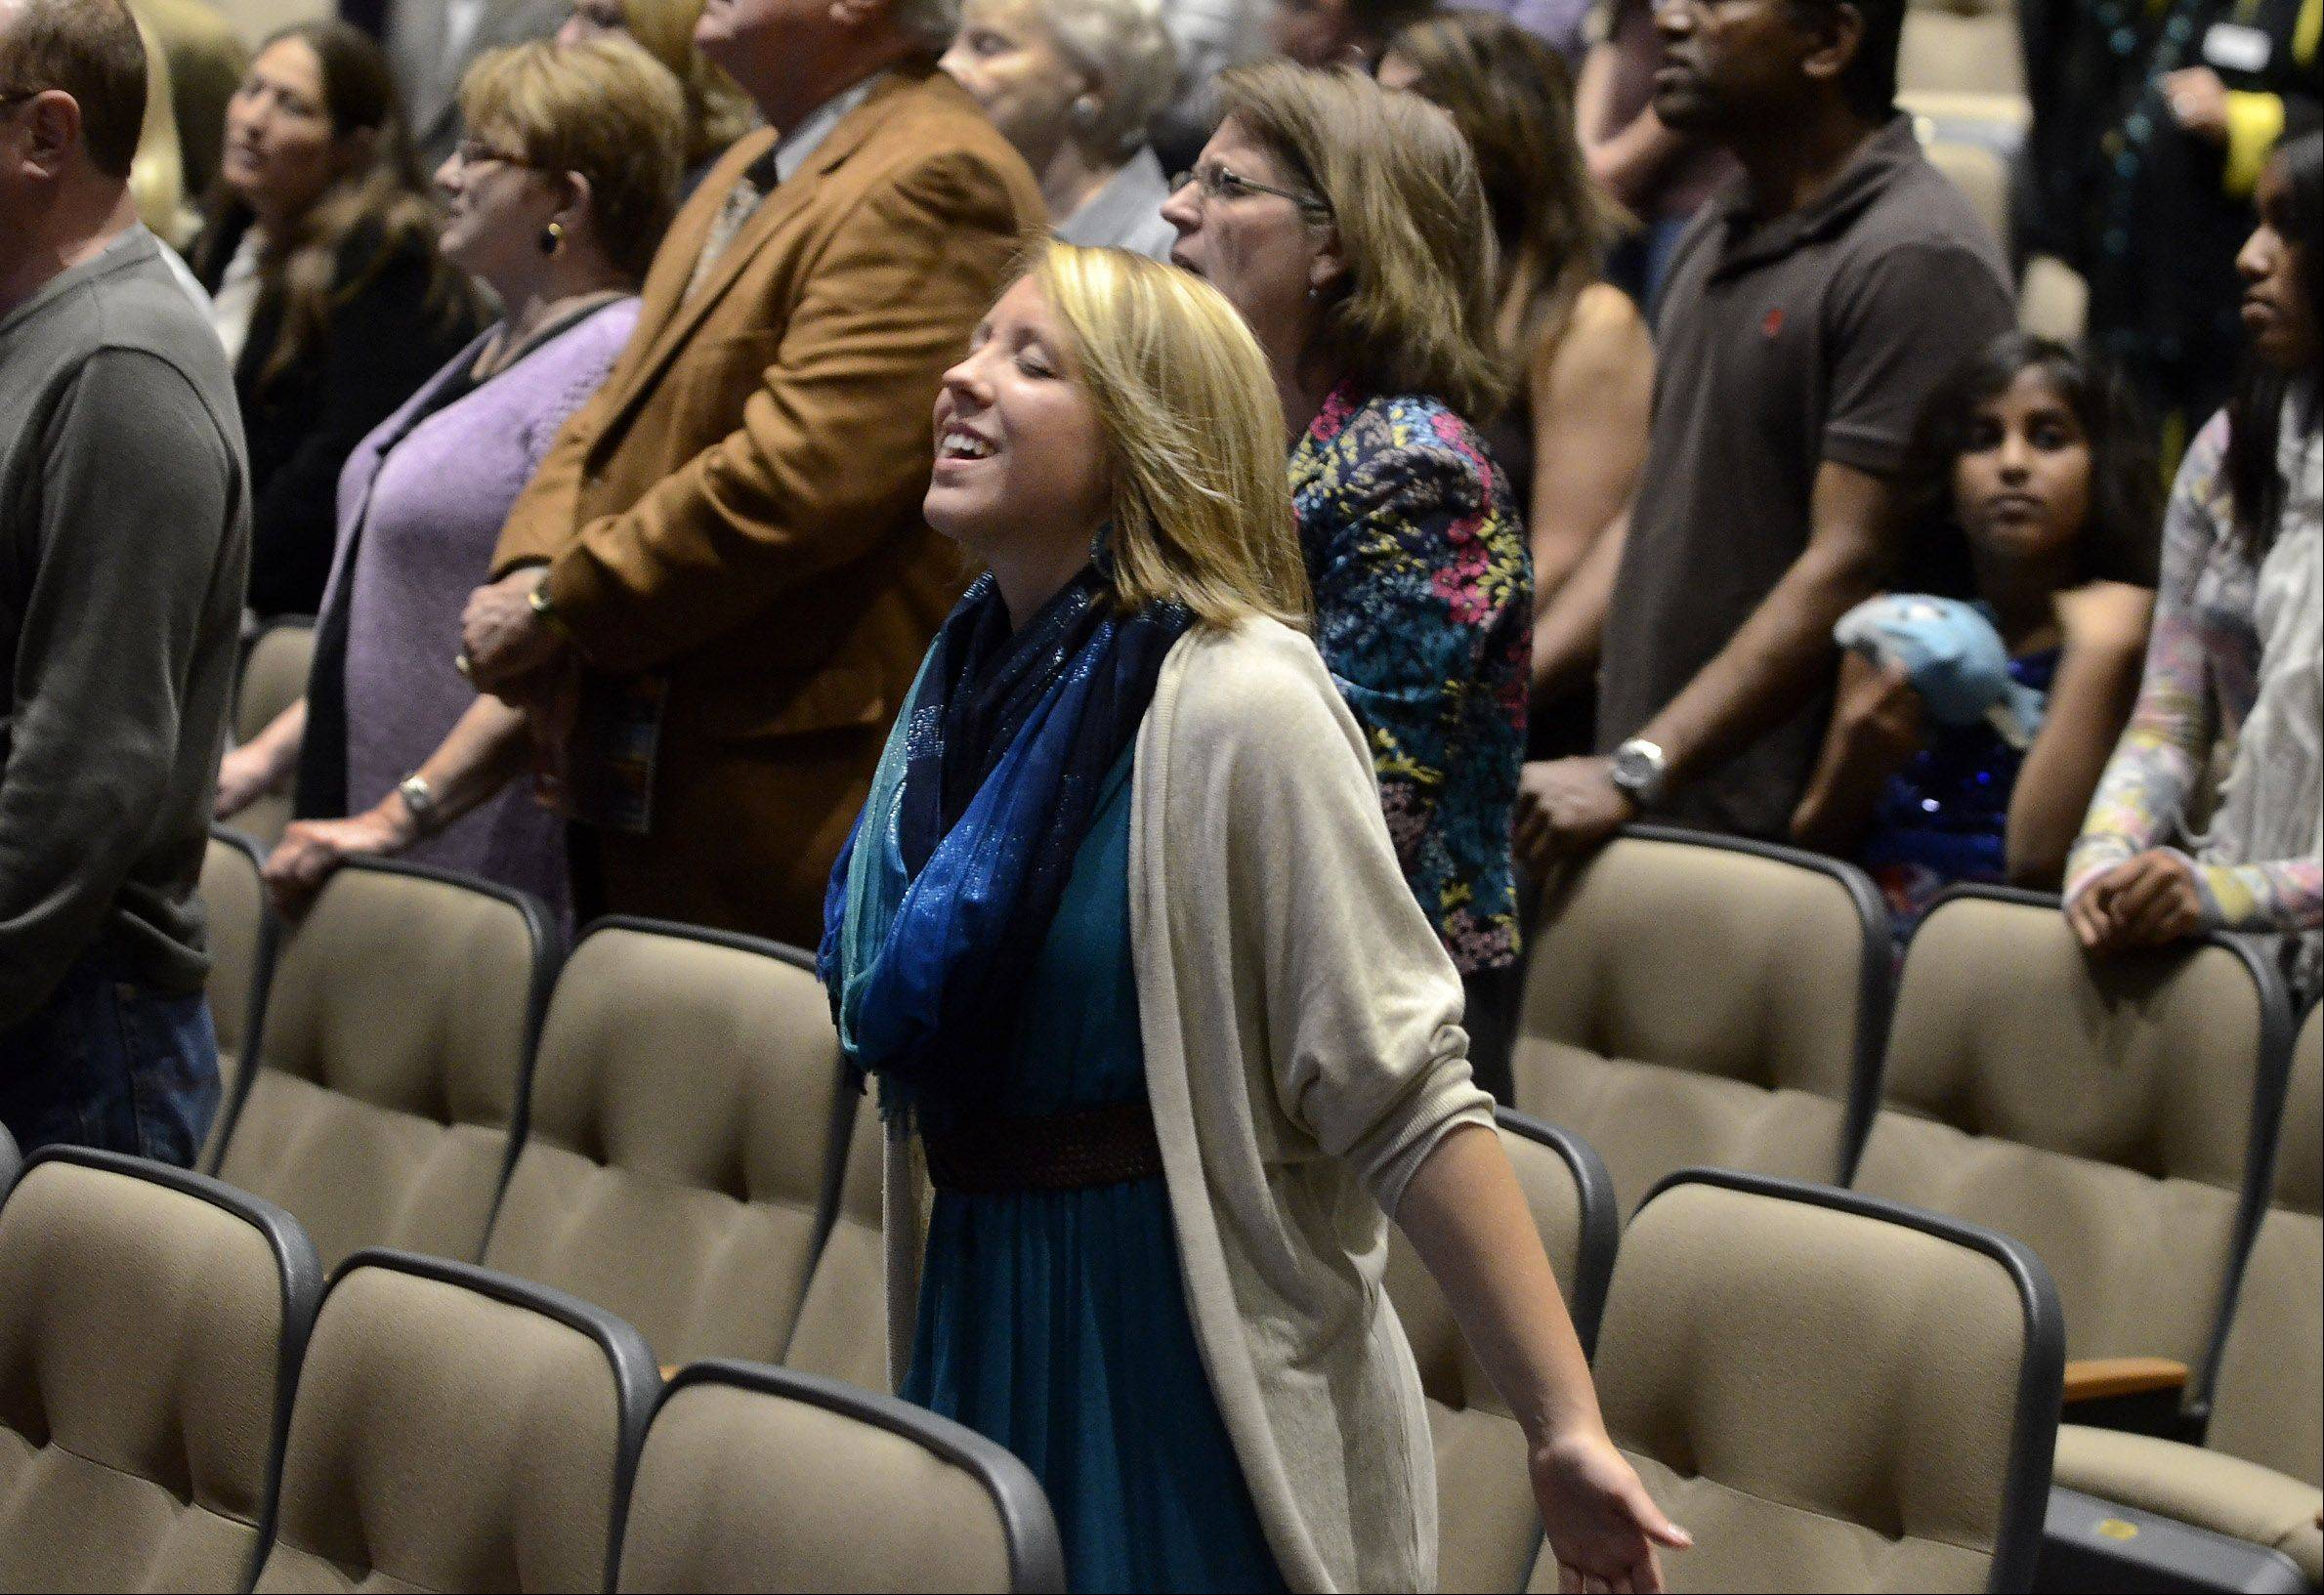 Kelli Schick, of Plainfield, gets absorbed in song as Calvary Church in Naperville opened its newly renovated auditorium Sunday after more than five months of construction. The choir and orchestra lead the congregation through a history of worship.